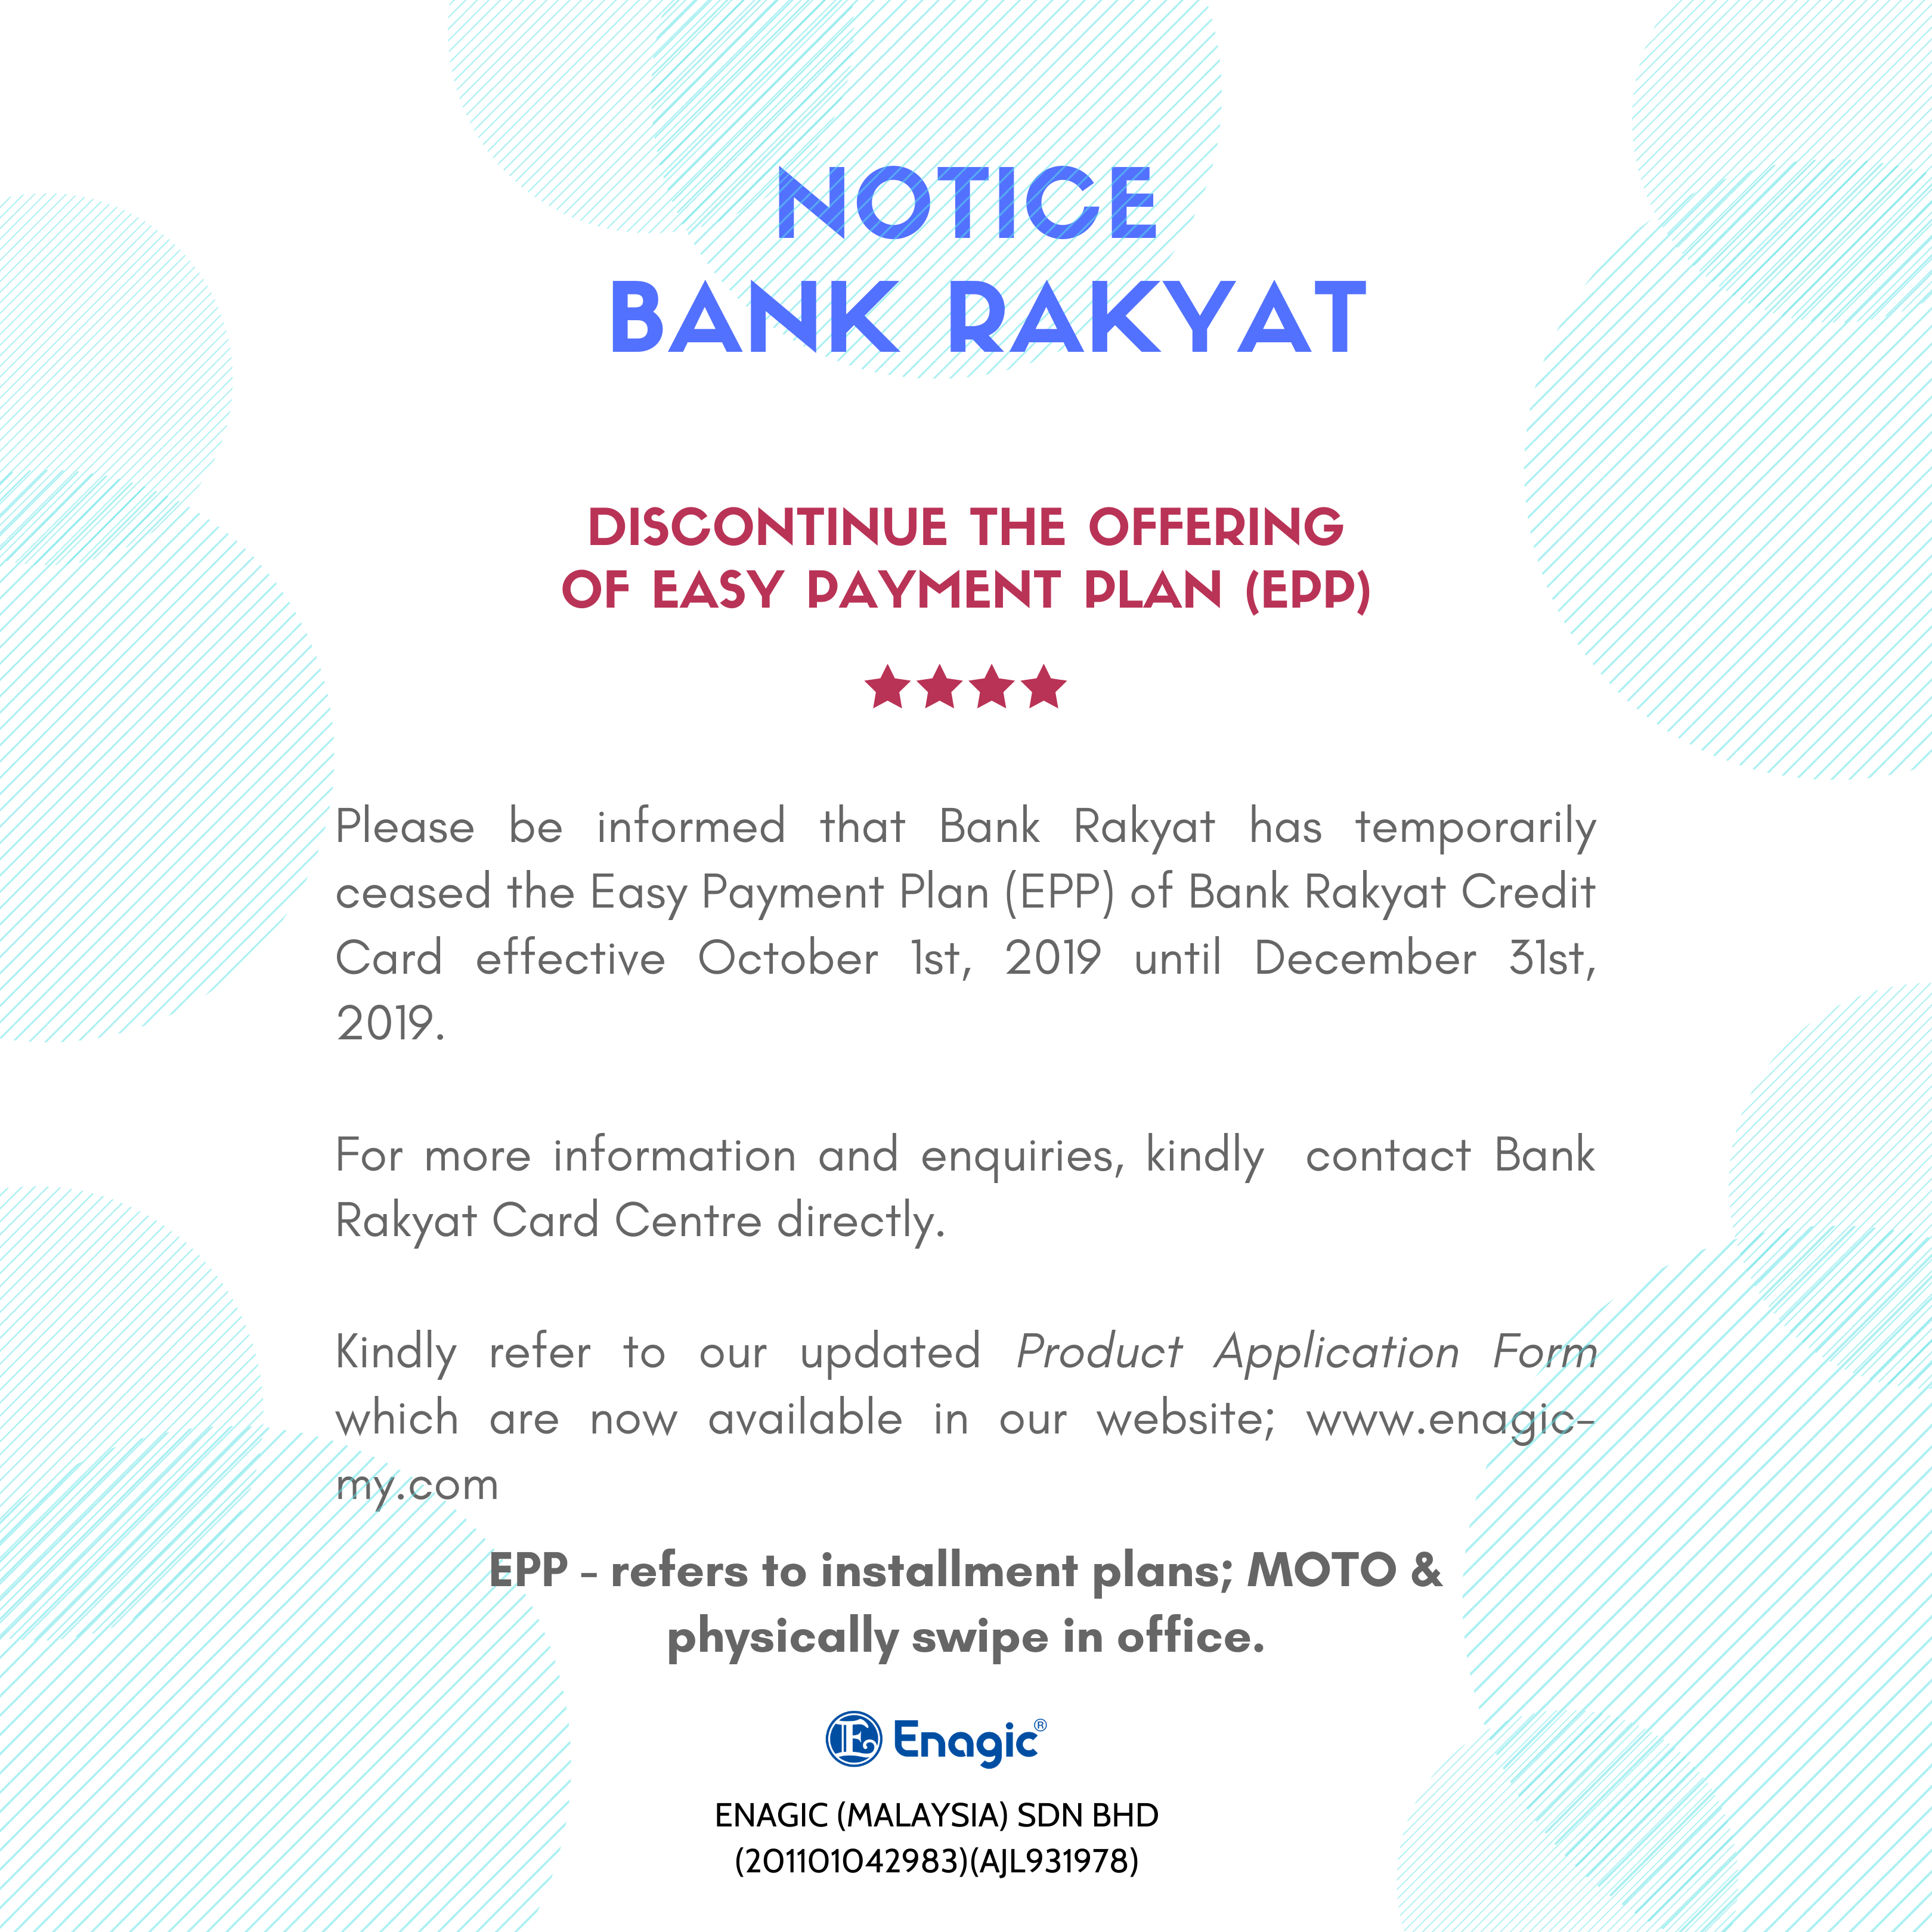 NOTICE | BANK RAKYAT (Discontinue The Offering Of Easy Payment Plan EPP)